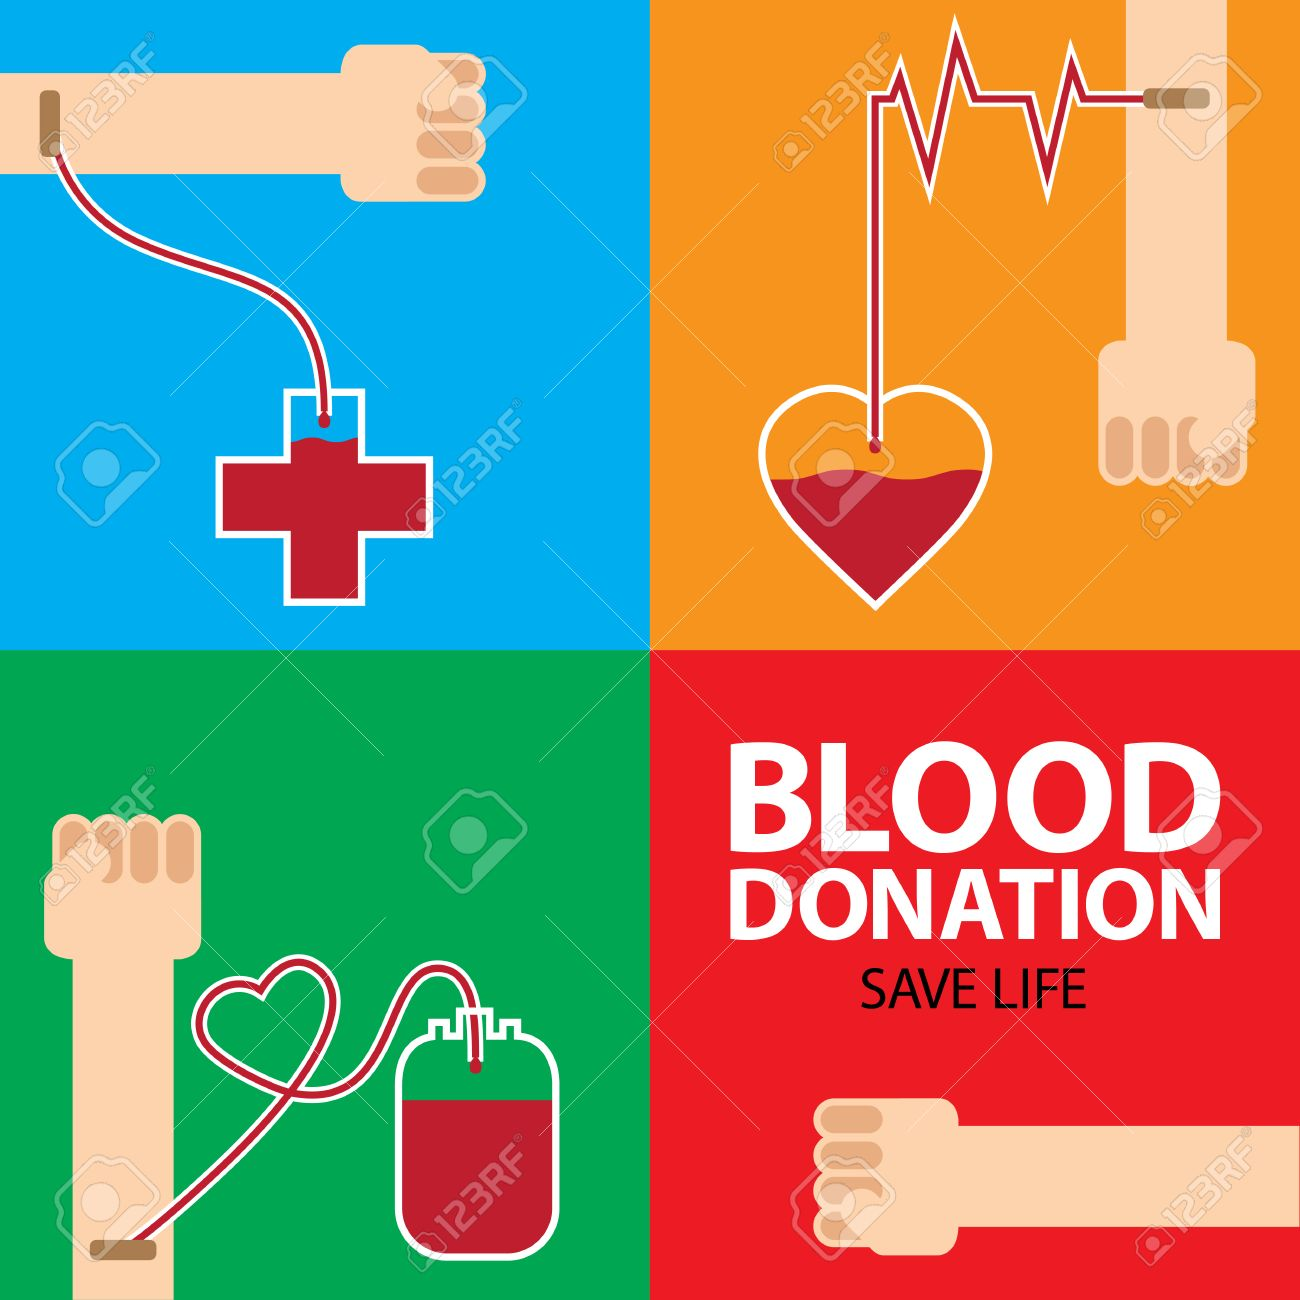 Poster design on blood donation - Blood Donation Poster Design With Colorful Background Stock Photo 44868603